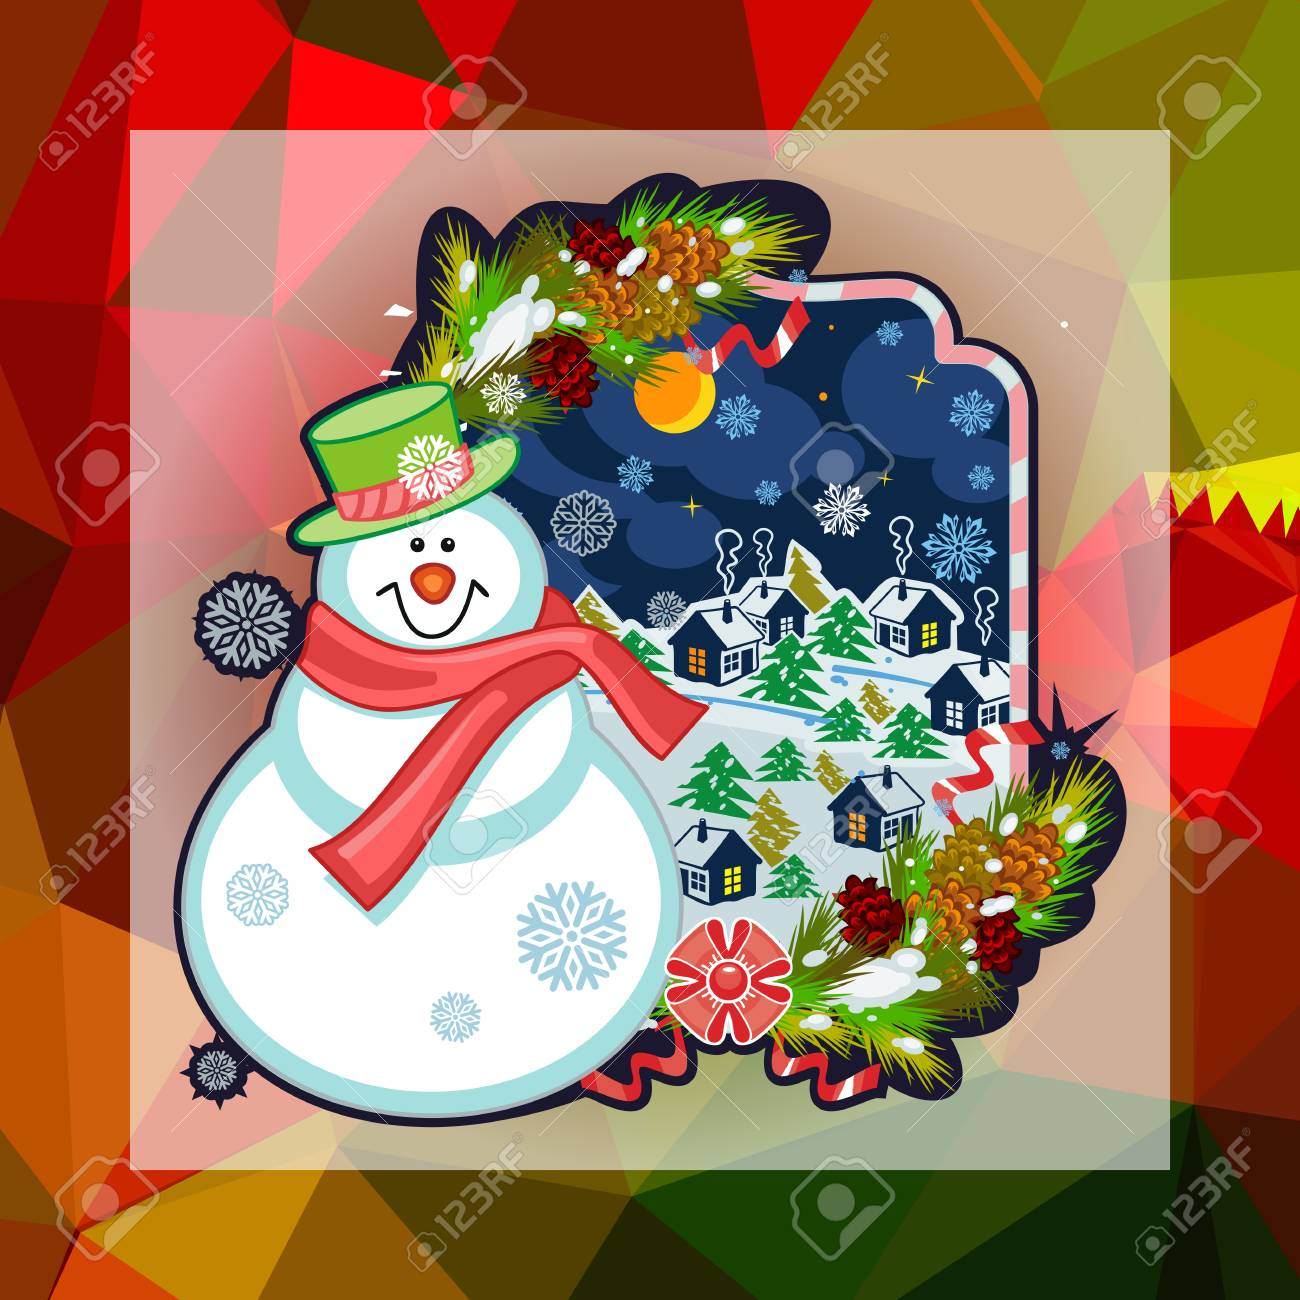 holiday square christmas card with funny snowman and snowing